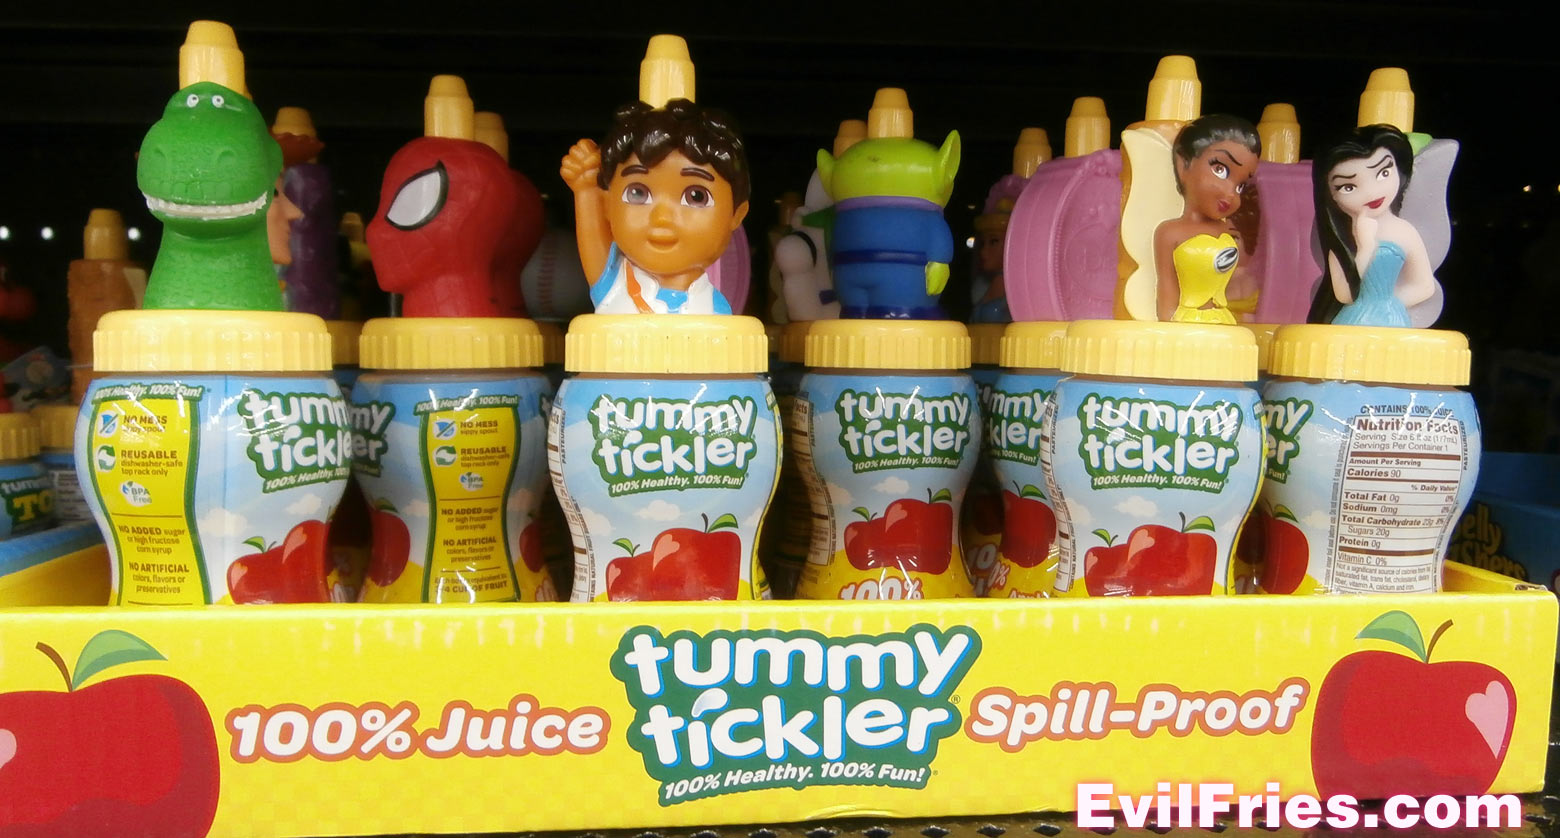 Juice tummy tickler